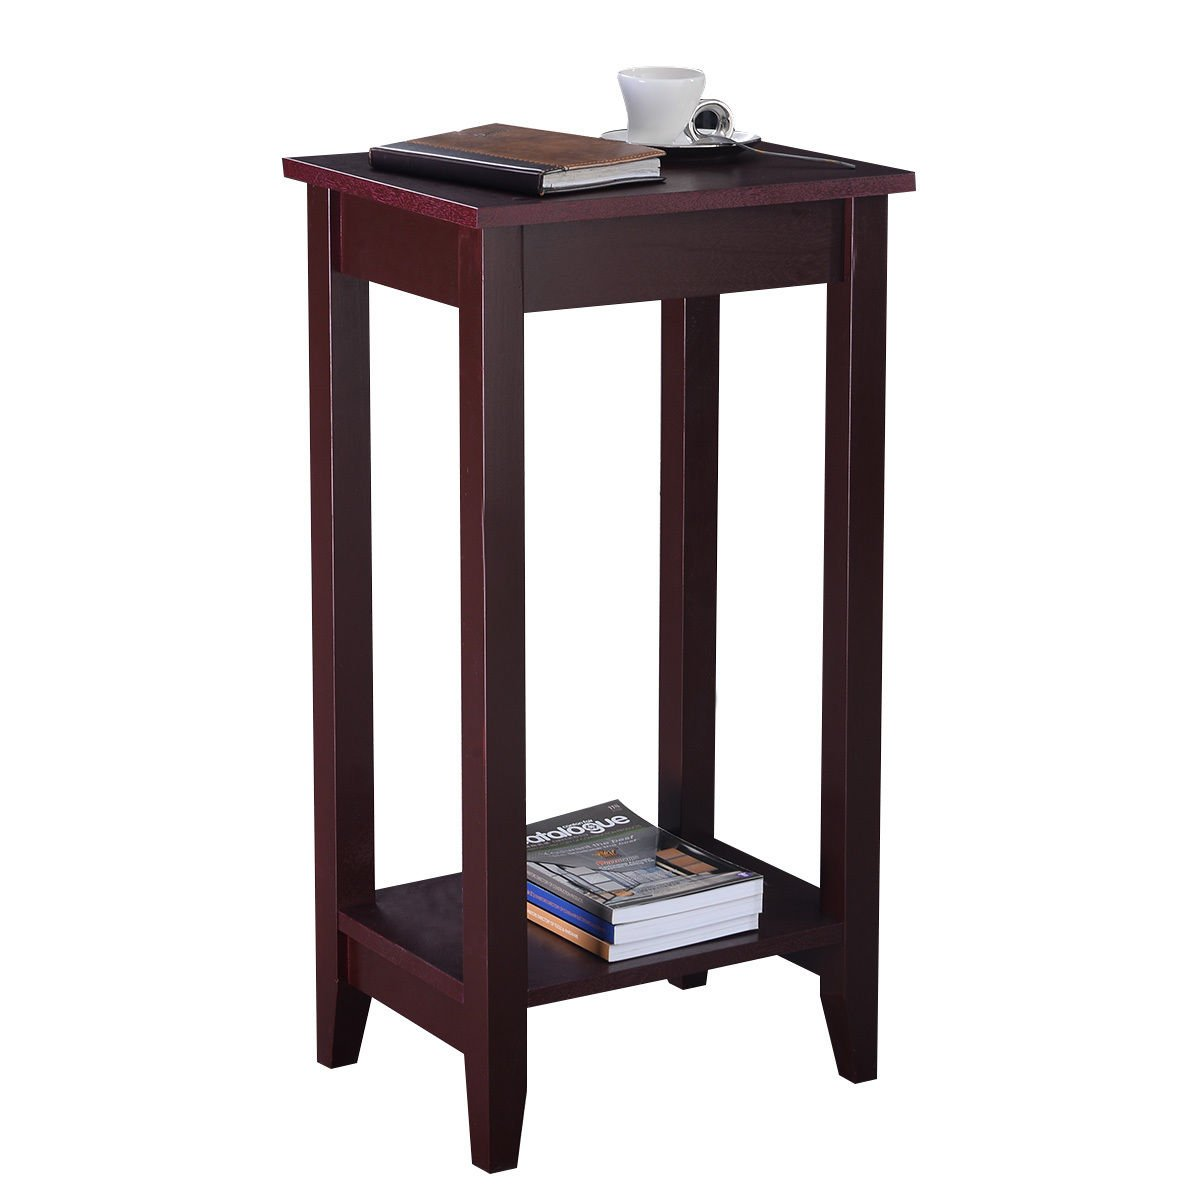 Amazon com giantex tall side end table with shelf coffee night stand bedside sofa table for living bedroom espresso kitchen dining